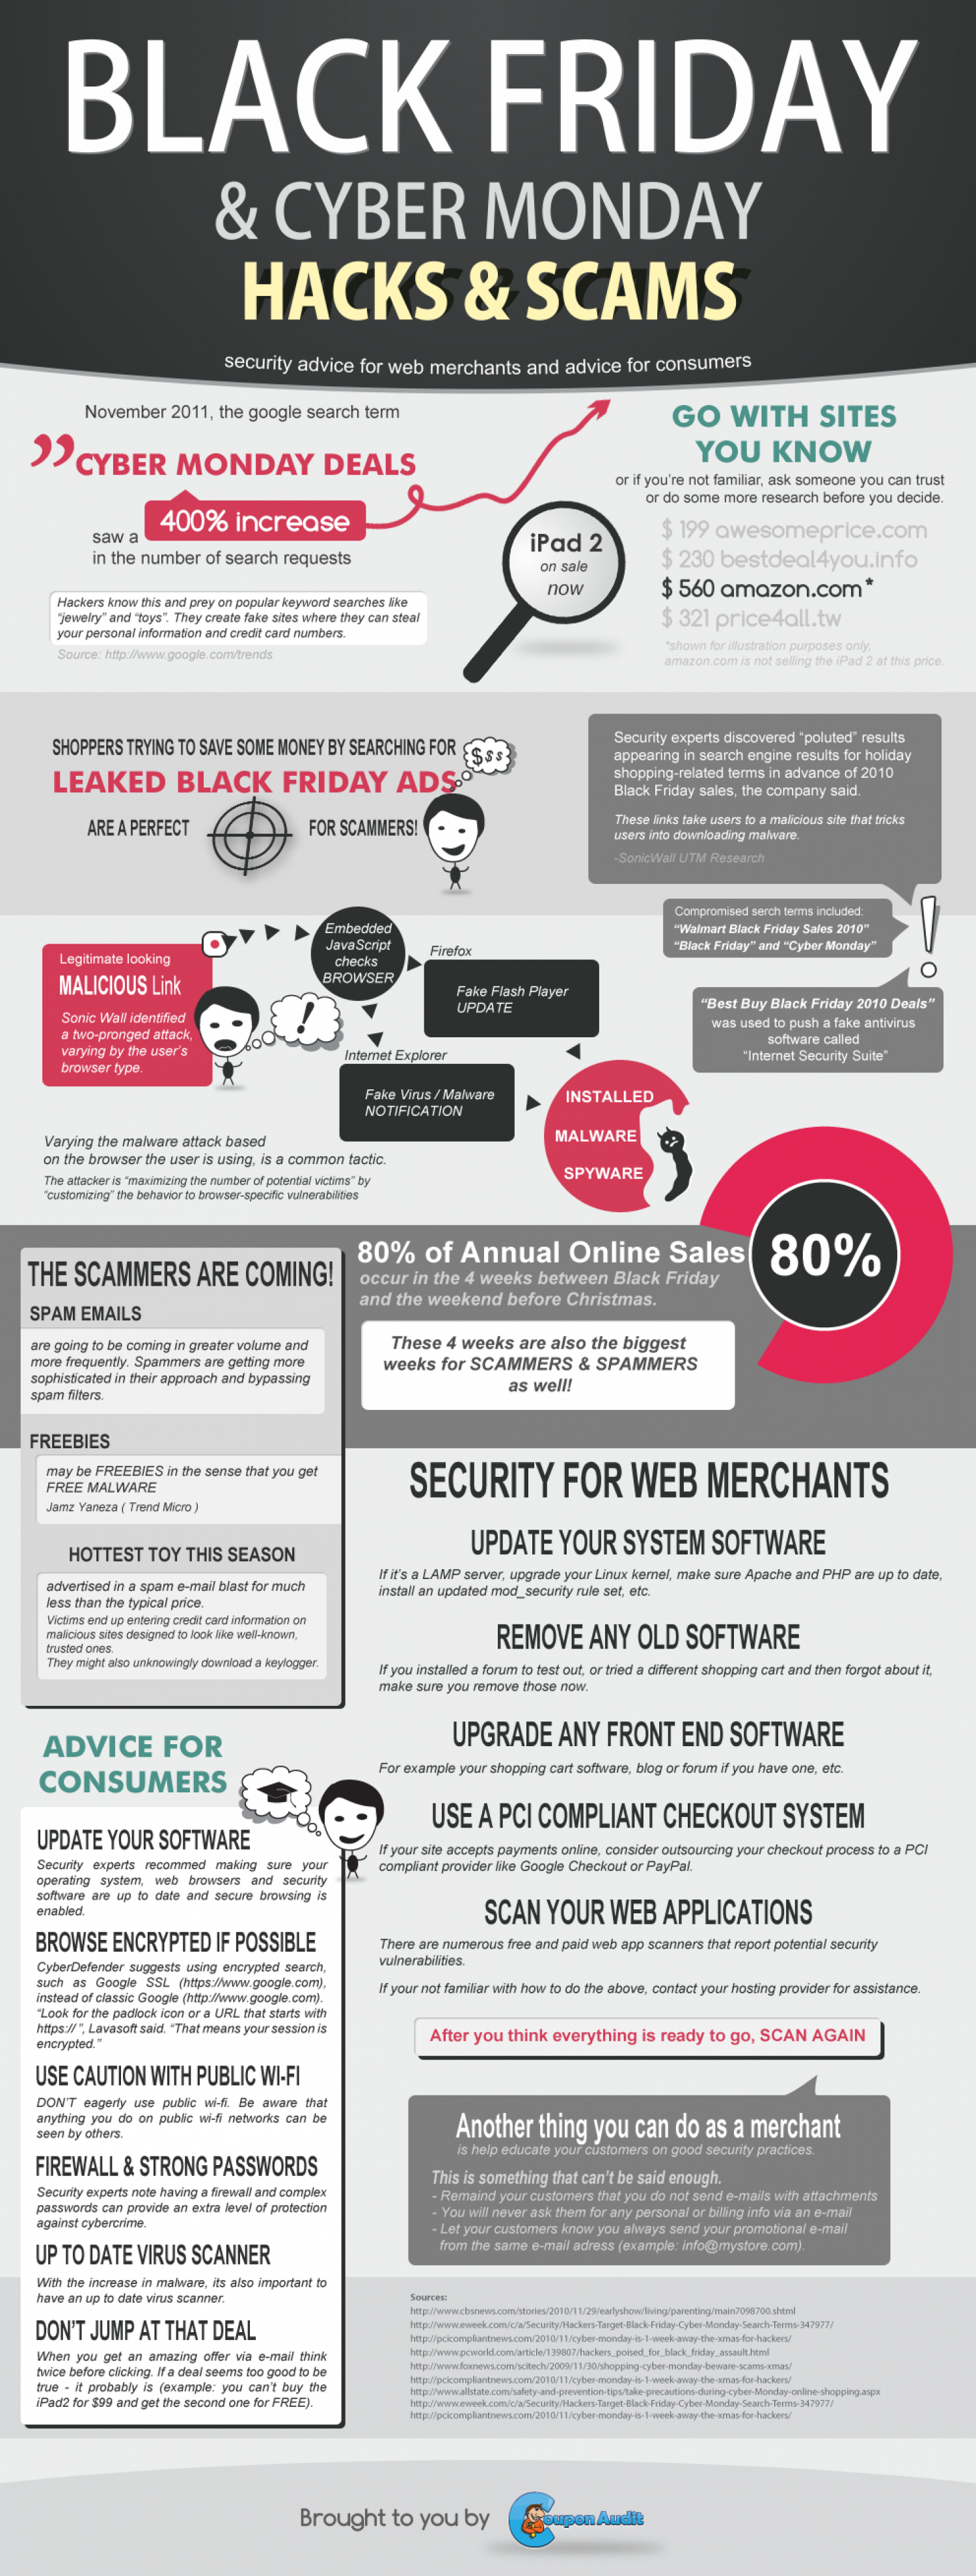 Cyber Monday & Black Friday's Hacks & Scams Infographic